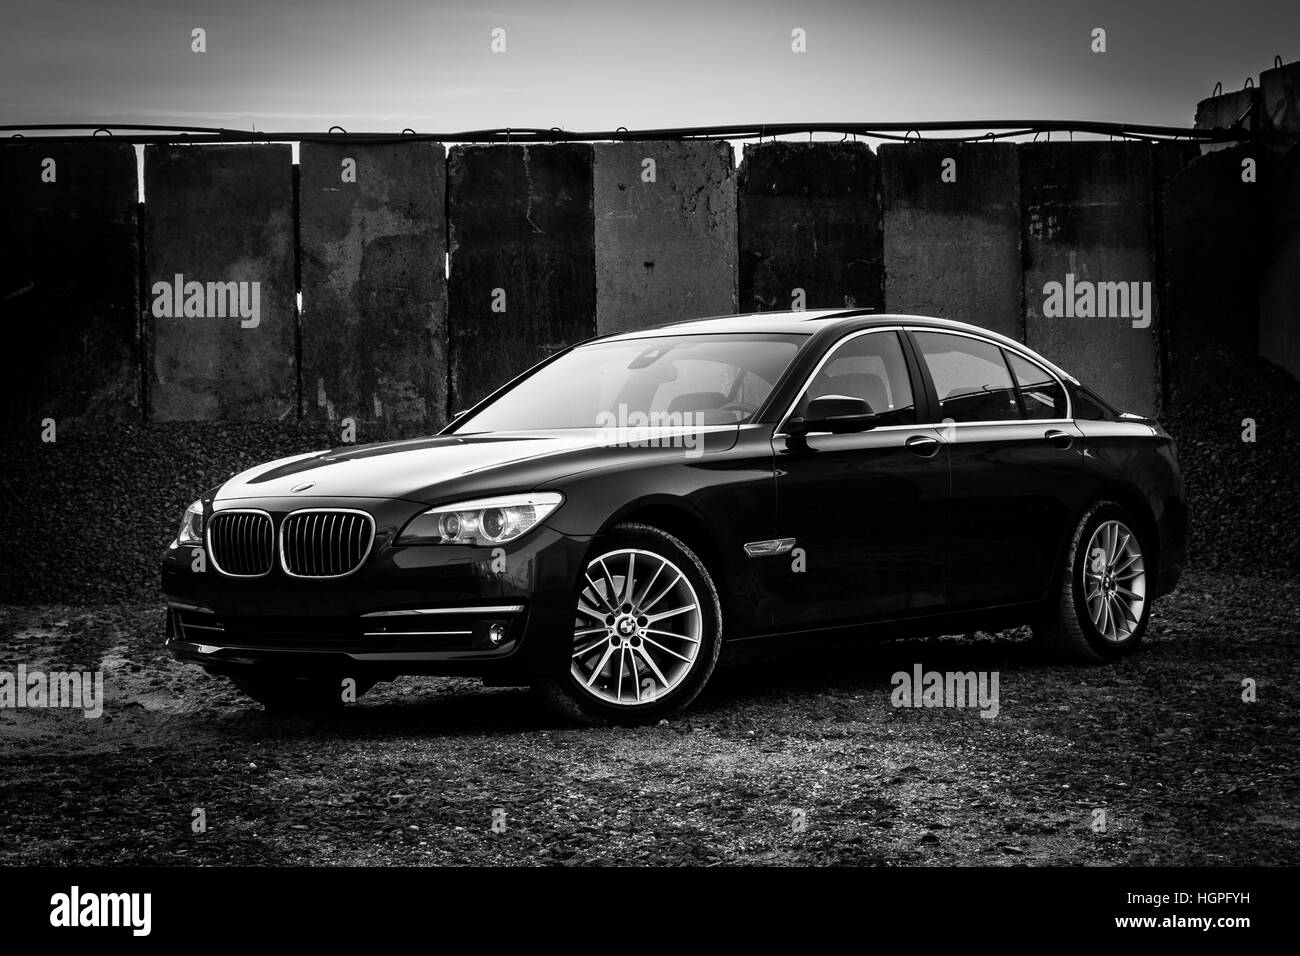 Bmw 4k Wallpaper High Resolution Stock Photography And Images Alamy